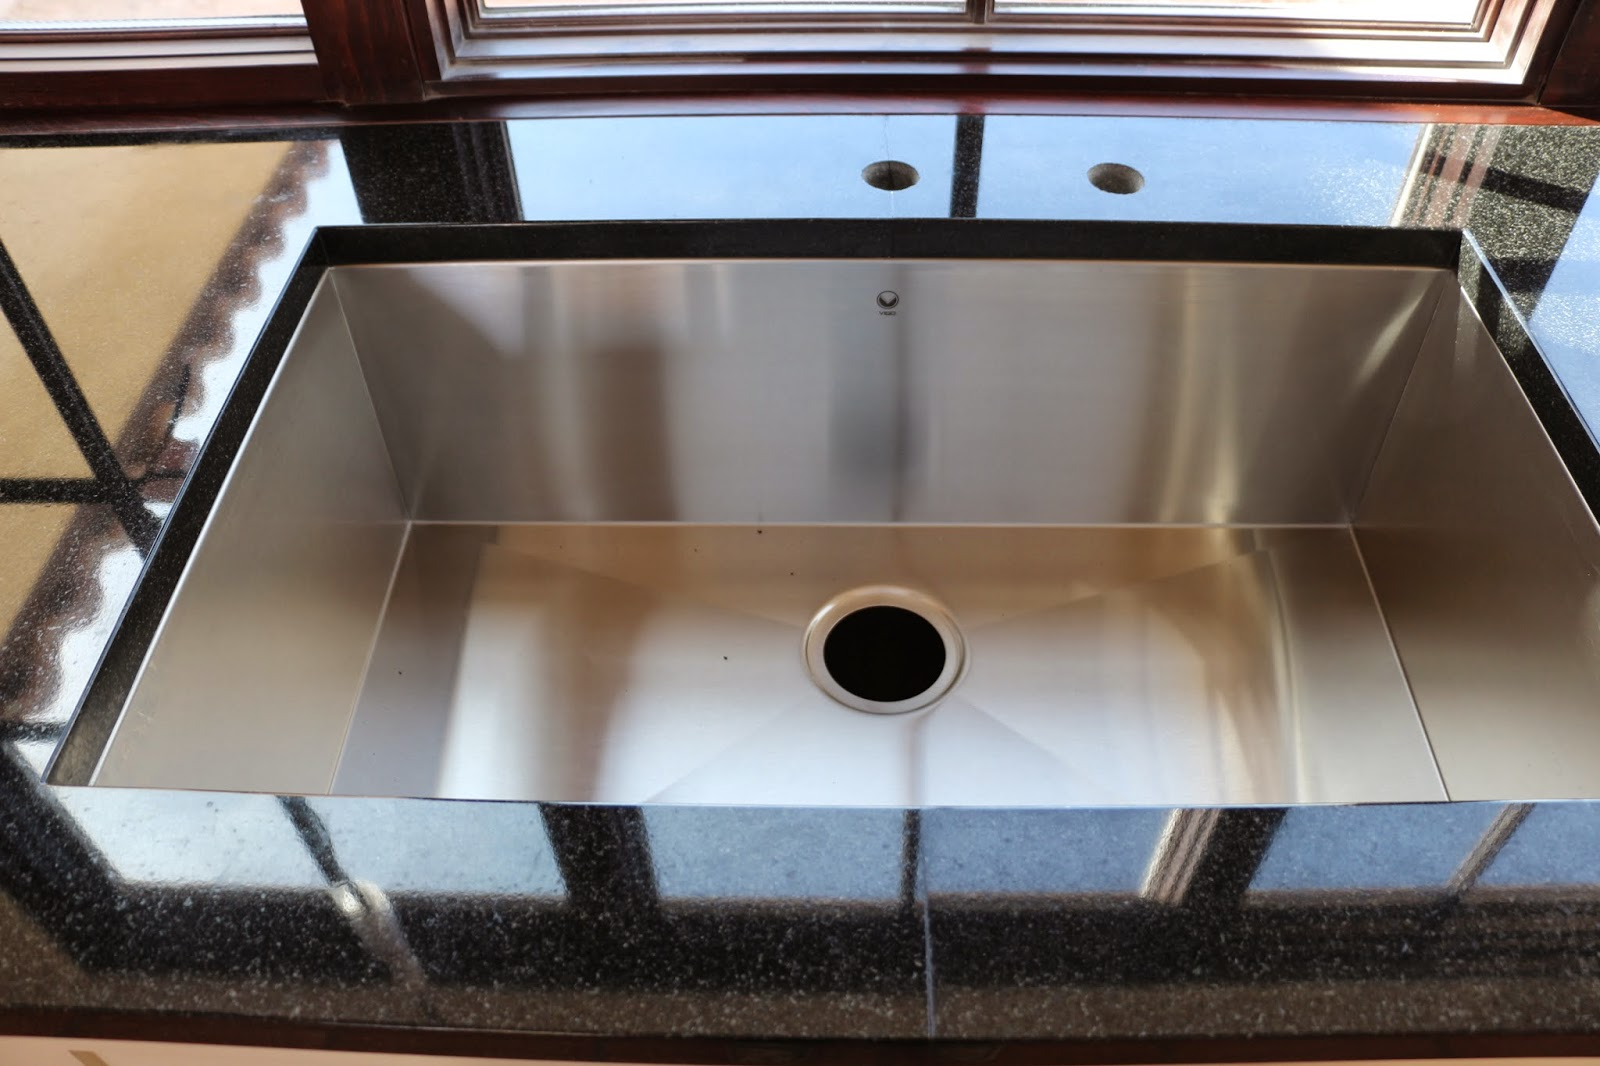 vigo sinks, undermount stainless steel sinks, vigo undermount stainless steel sink, stainless steel sink